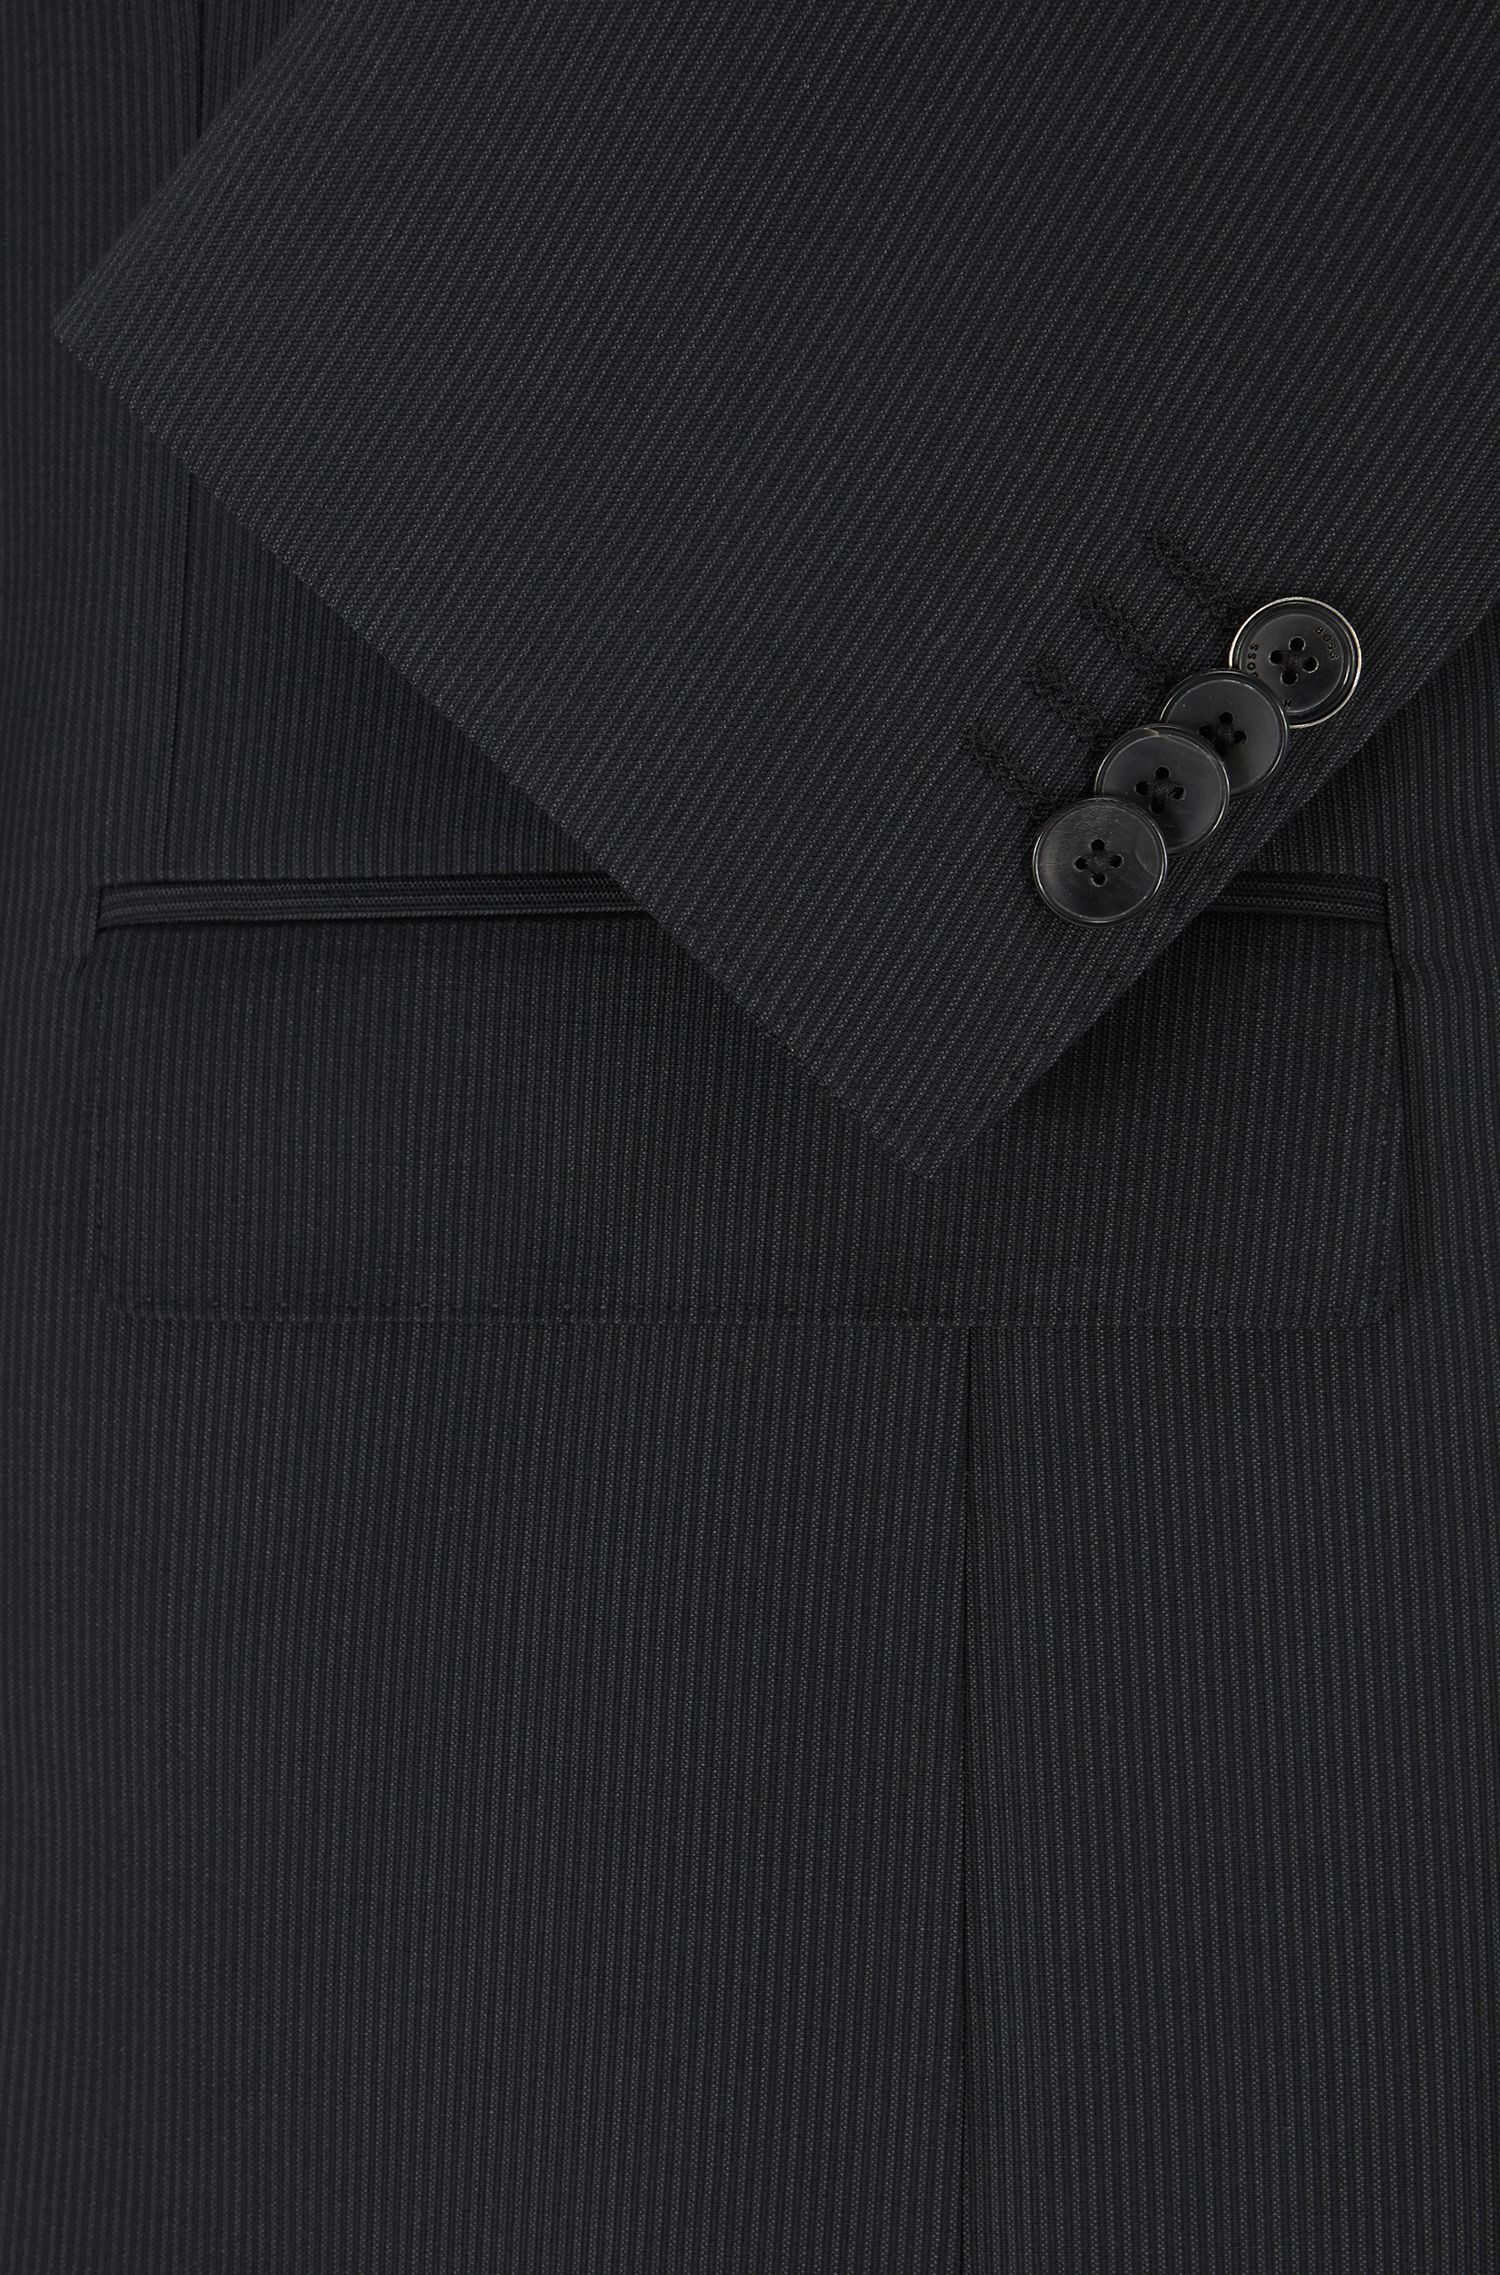 Striped Italian Virgin Wool Suit, Slim Fit | Huge/Genius, Black